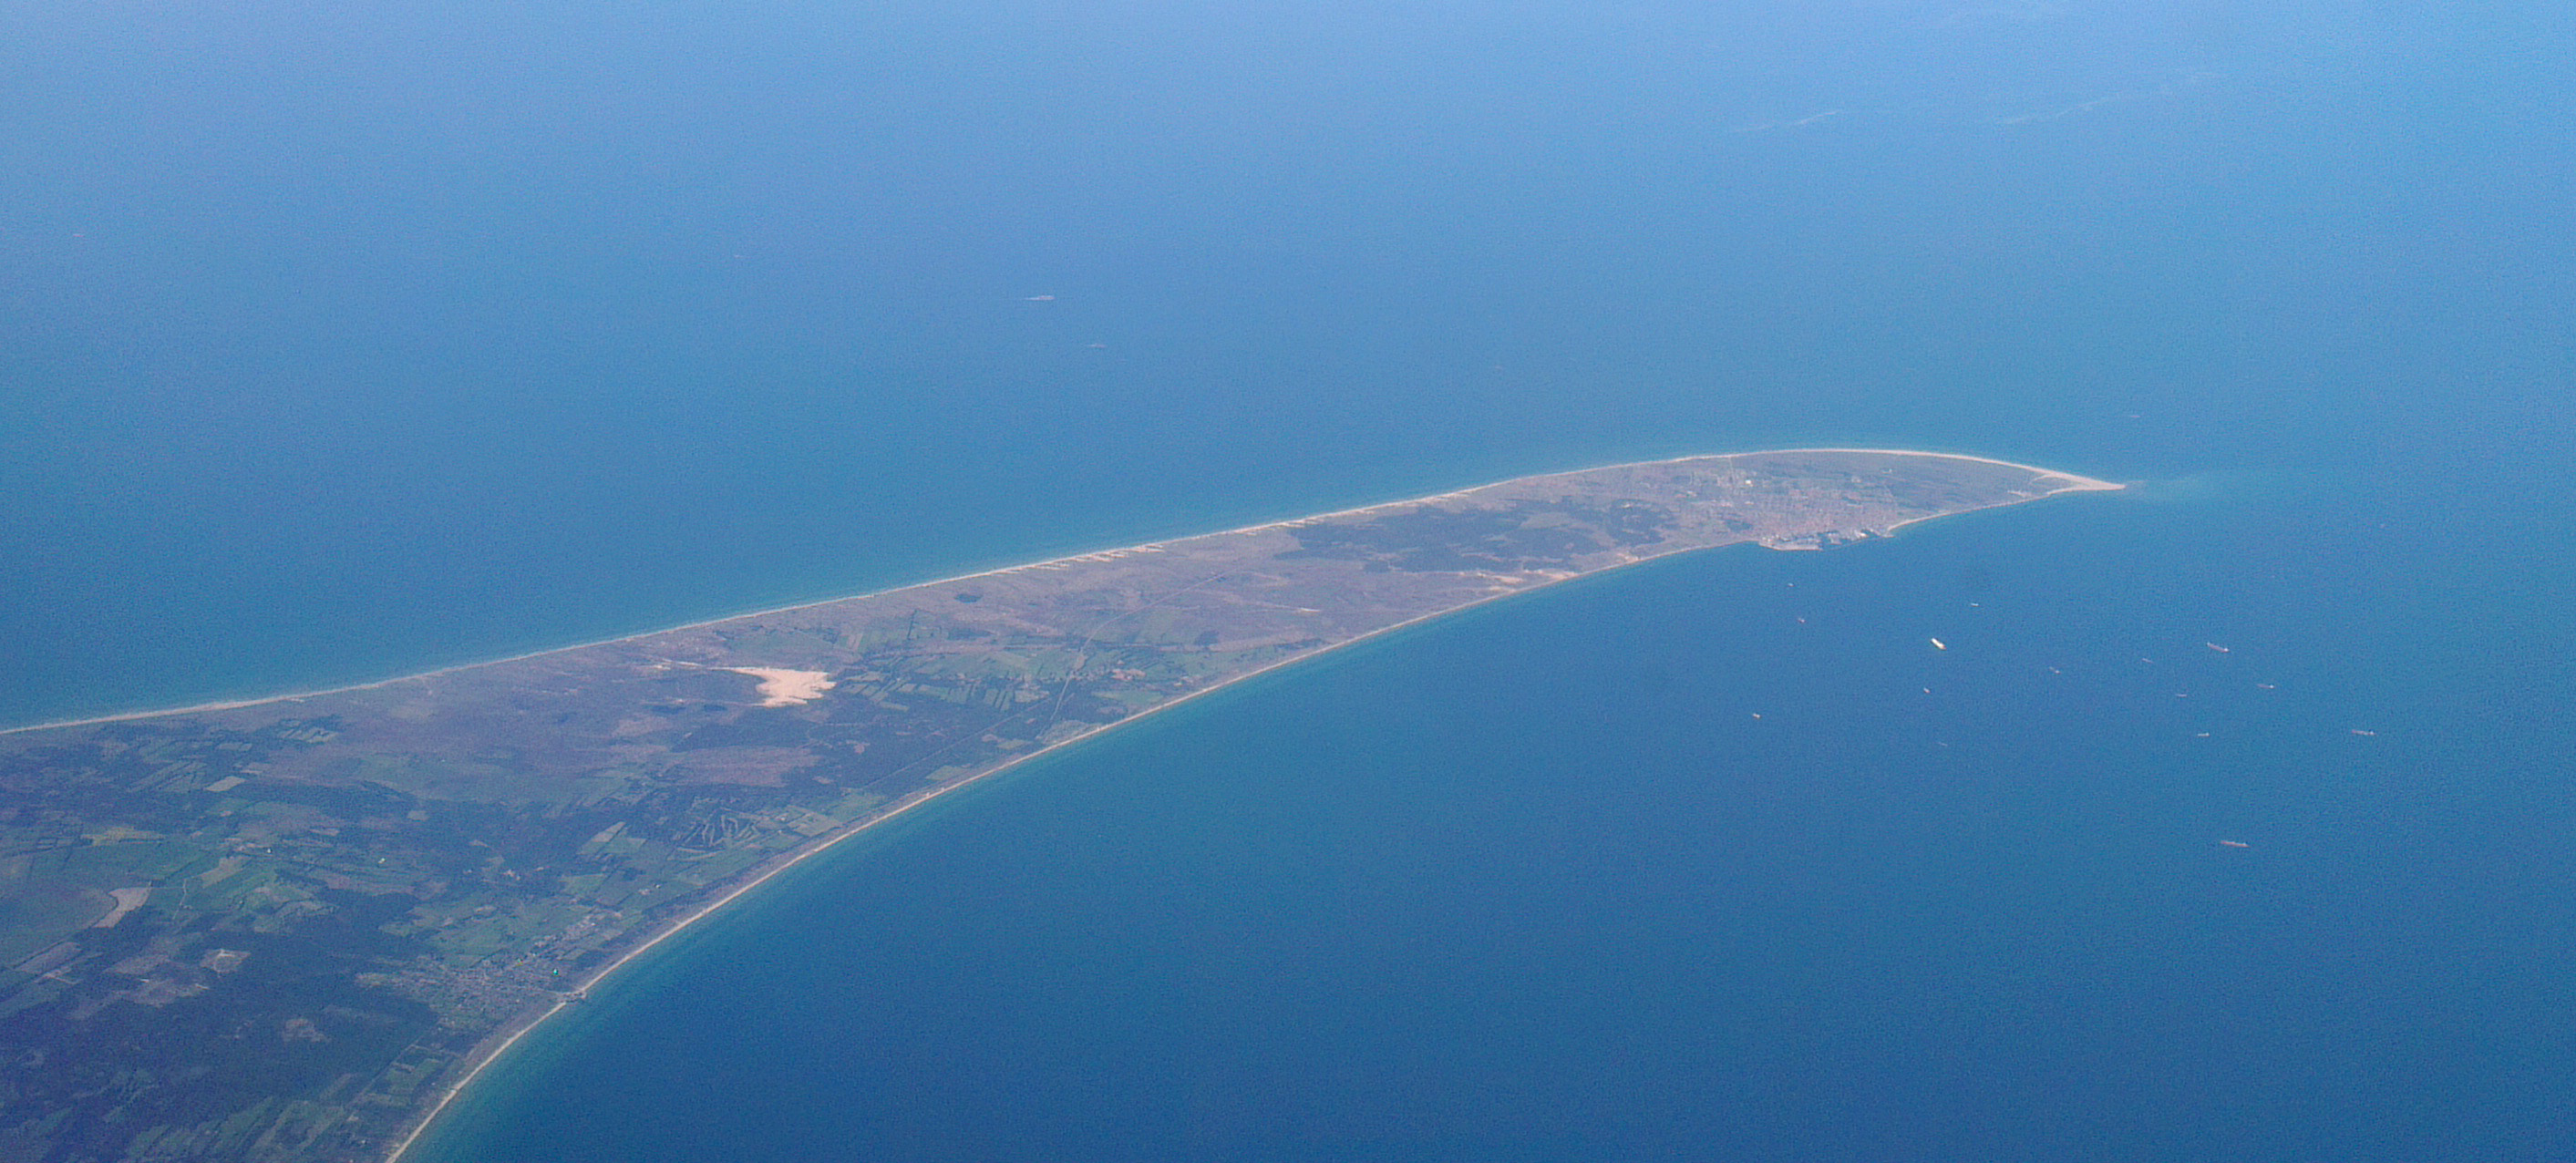 https://upload.wikimedia.org/wikipedia/commons/8/81/Grenen_from_the_air.jpg